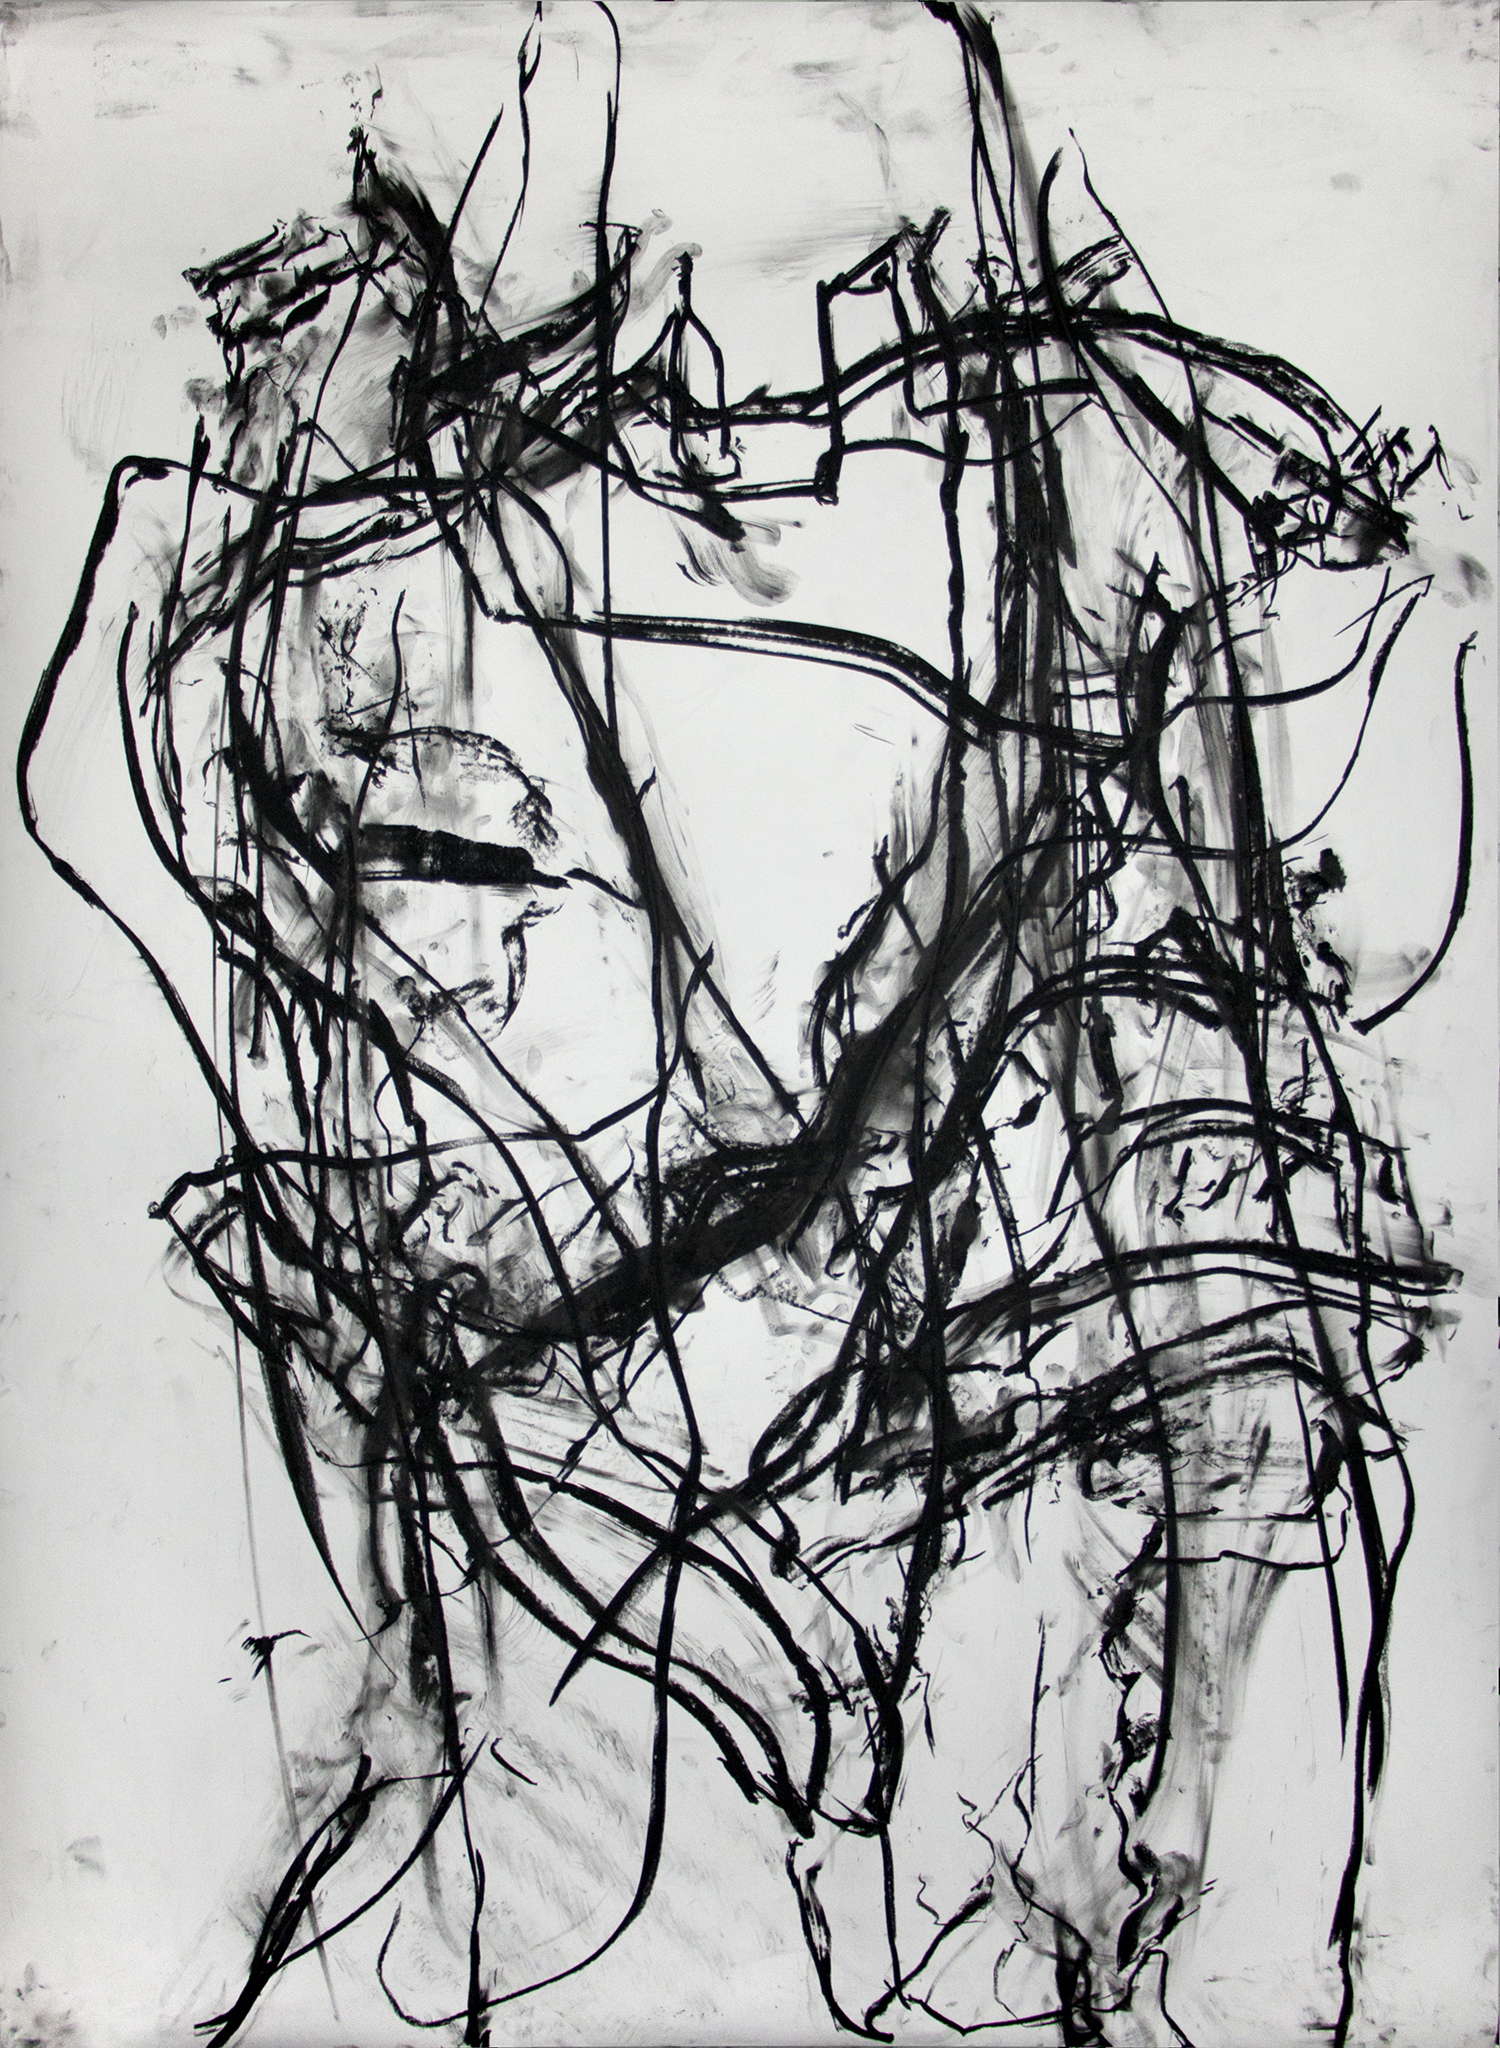 Untitled, 2016, Charcoal on paper, 72 x 53 in.